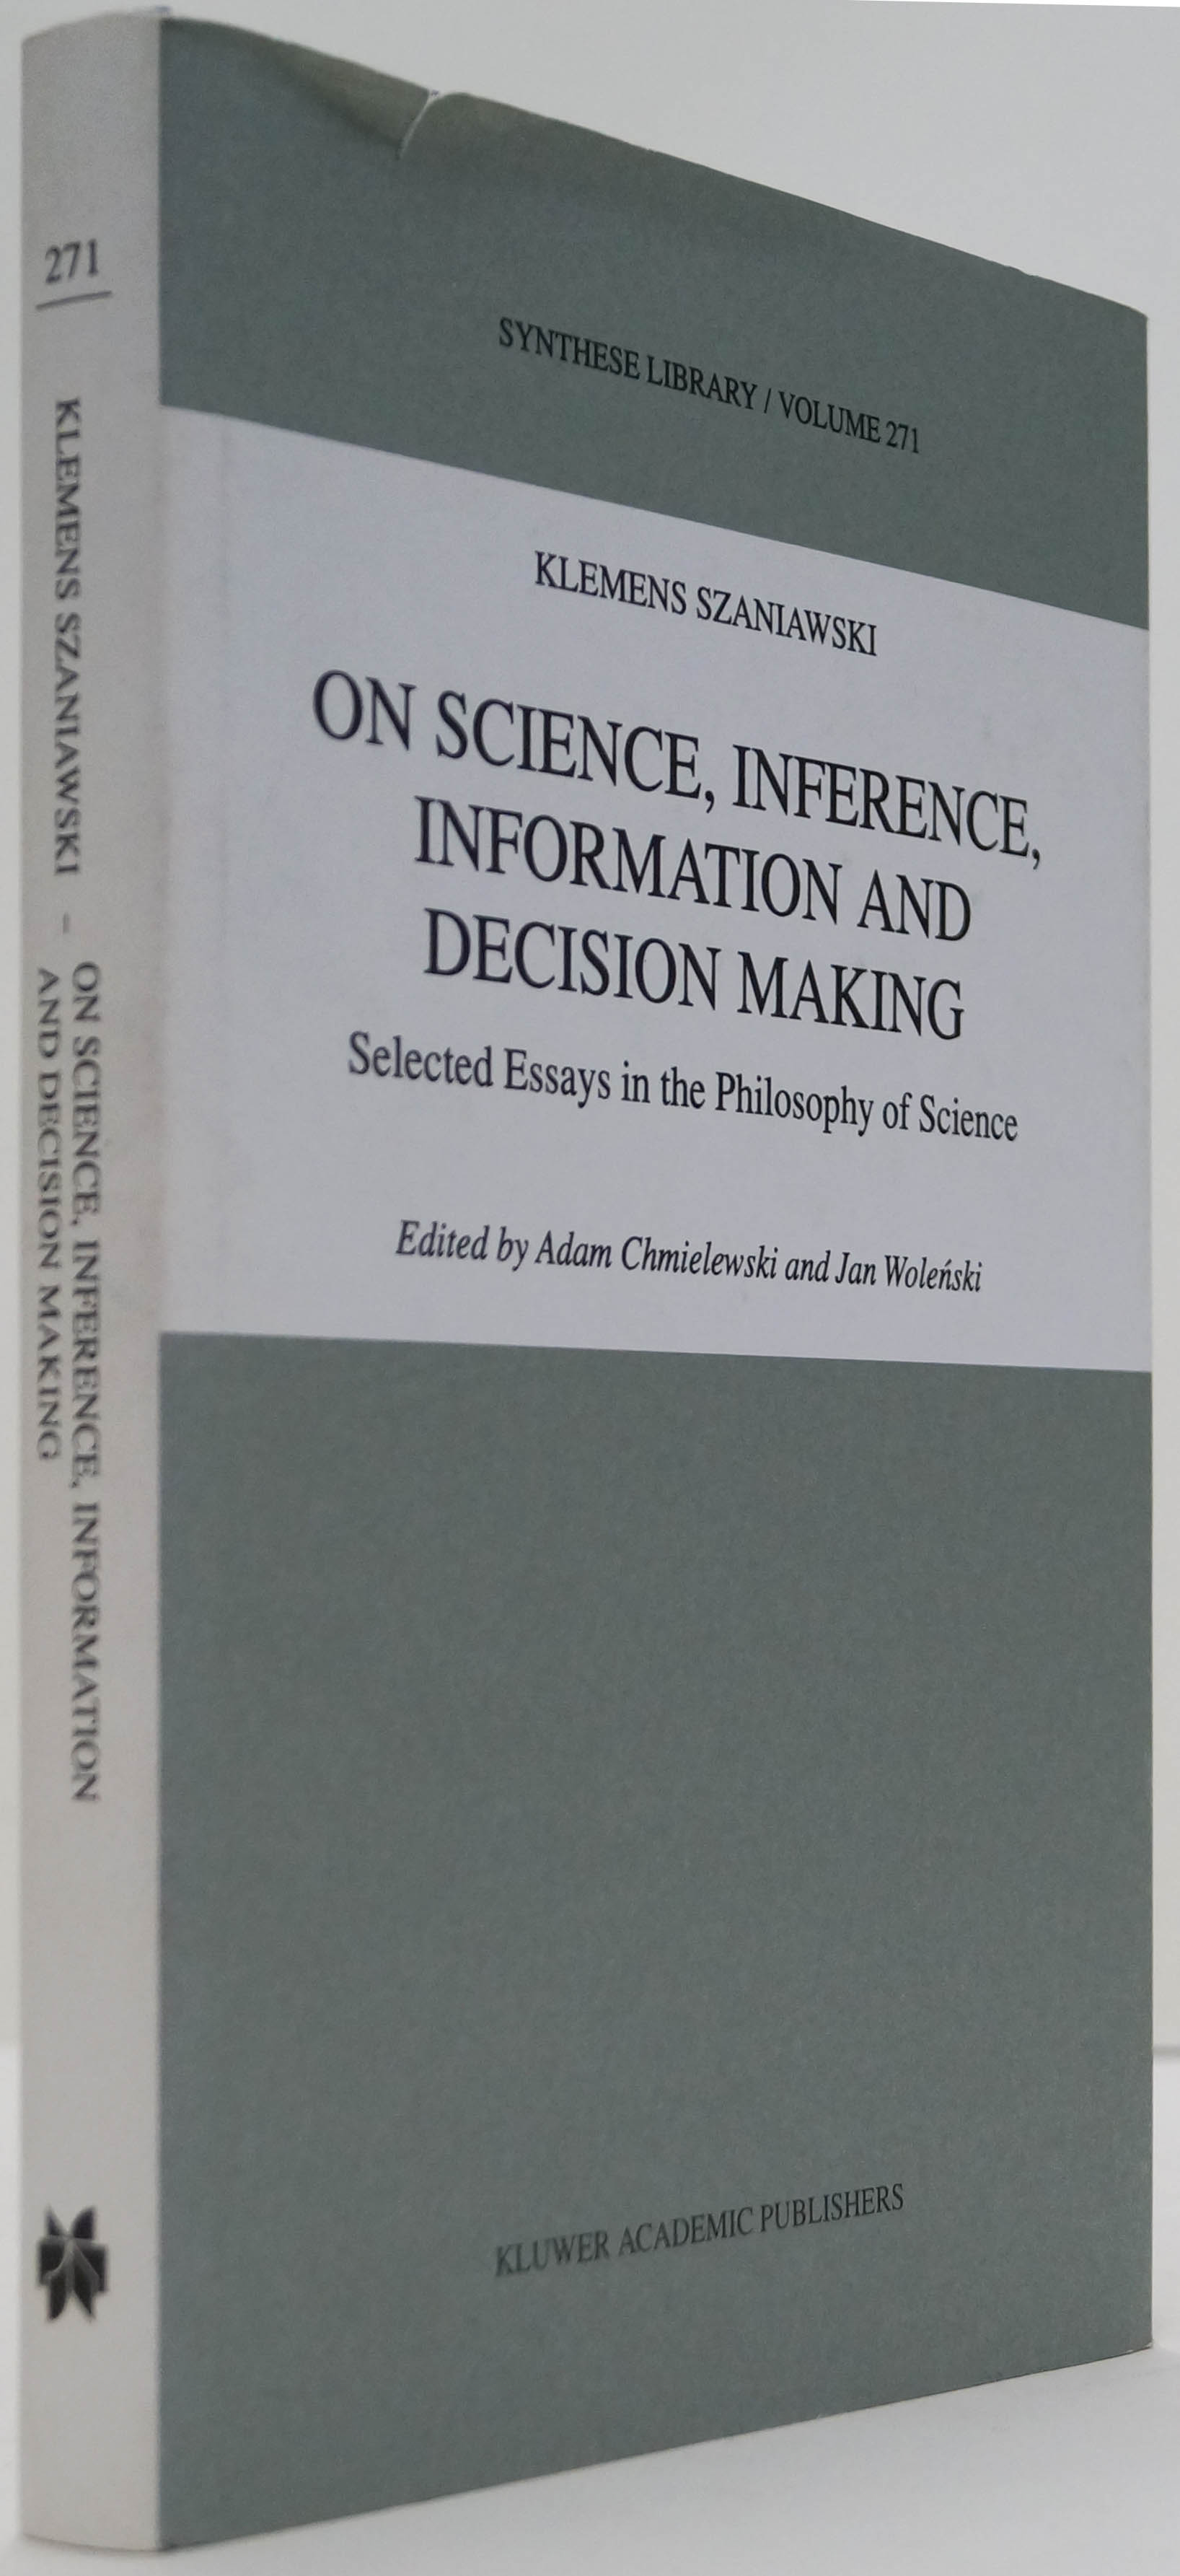 SZANIAWSKI, K., CHMIELEWSKI, A., WOLENSKI, J., (ED.) - On science, inference, information and decision-making. Selected essays in the philosophy of science.